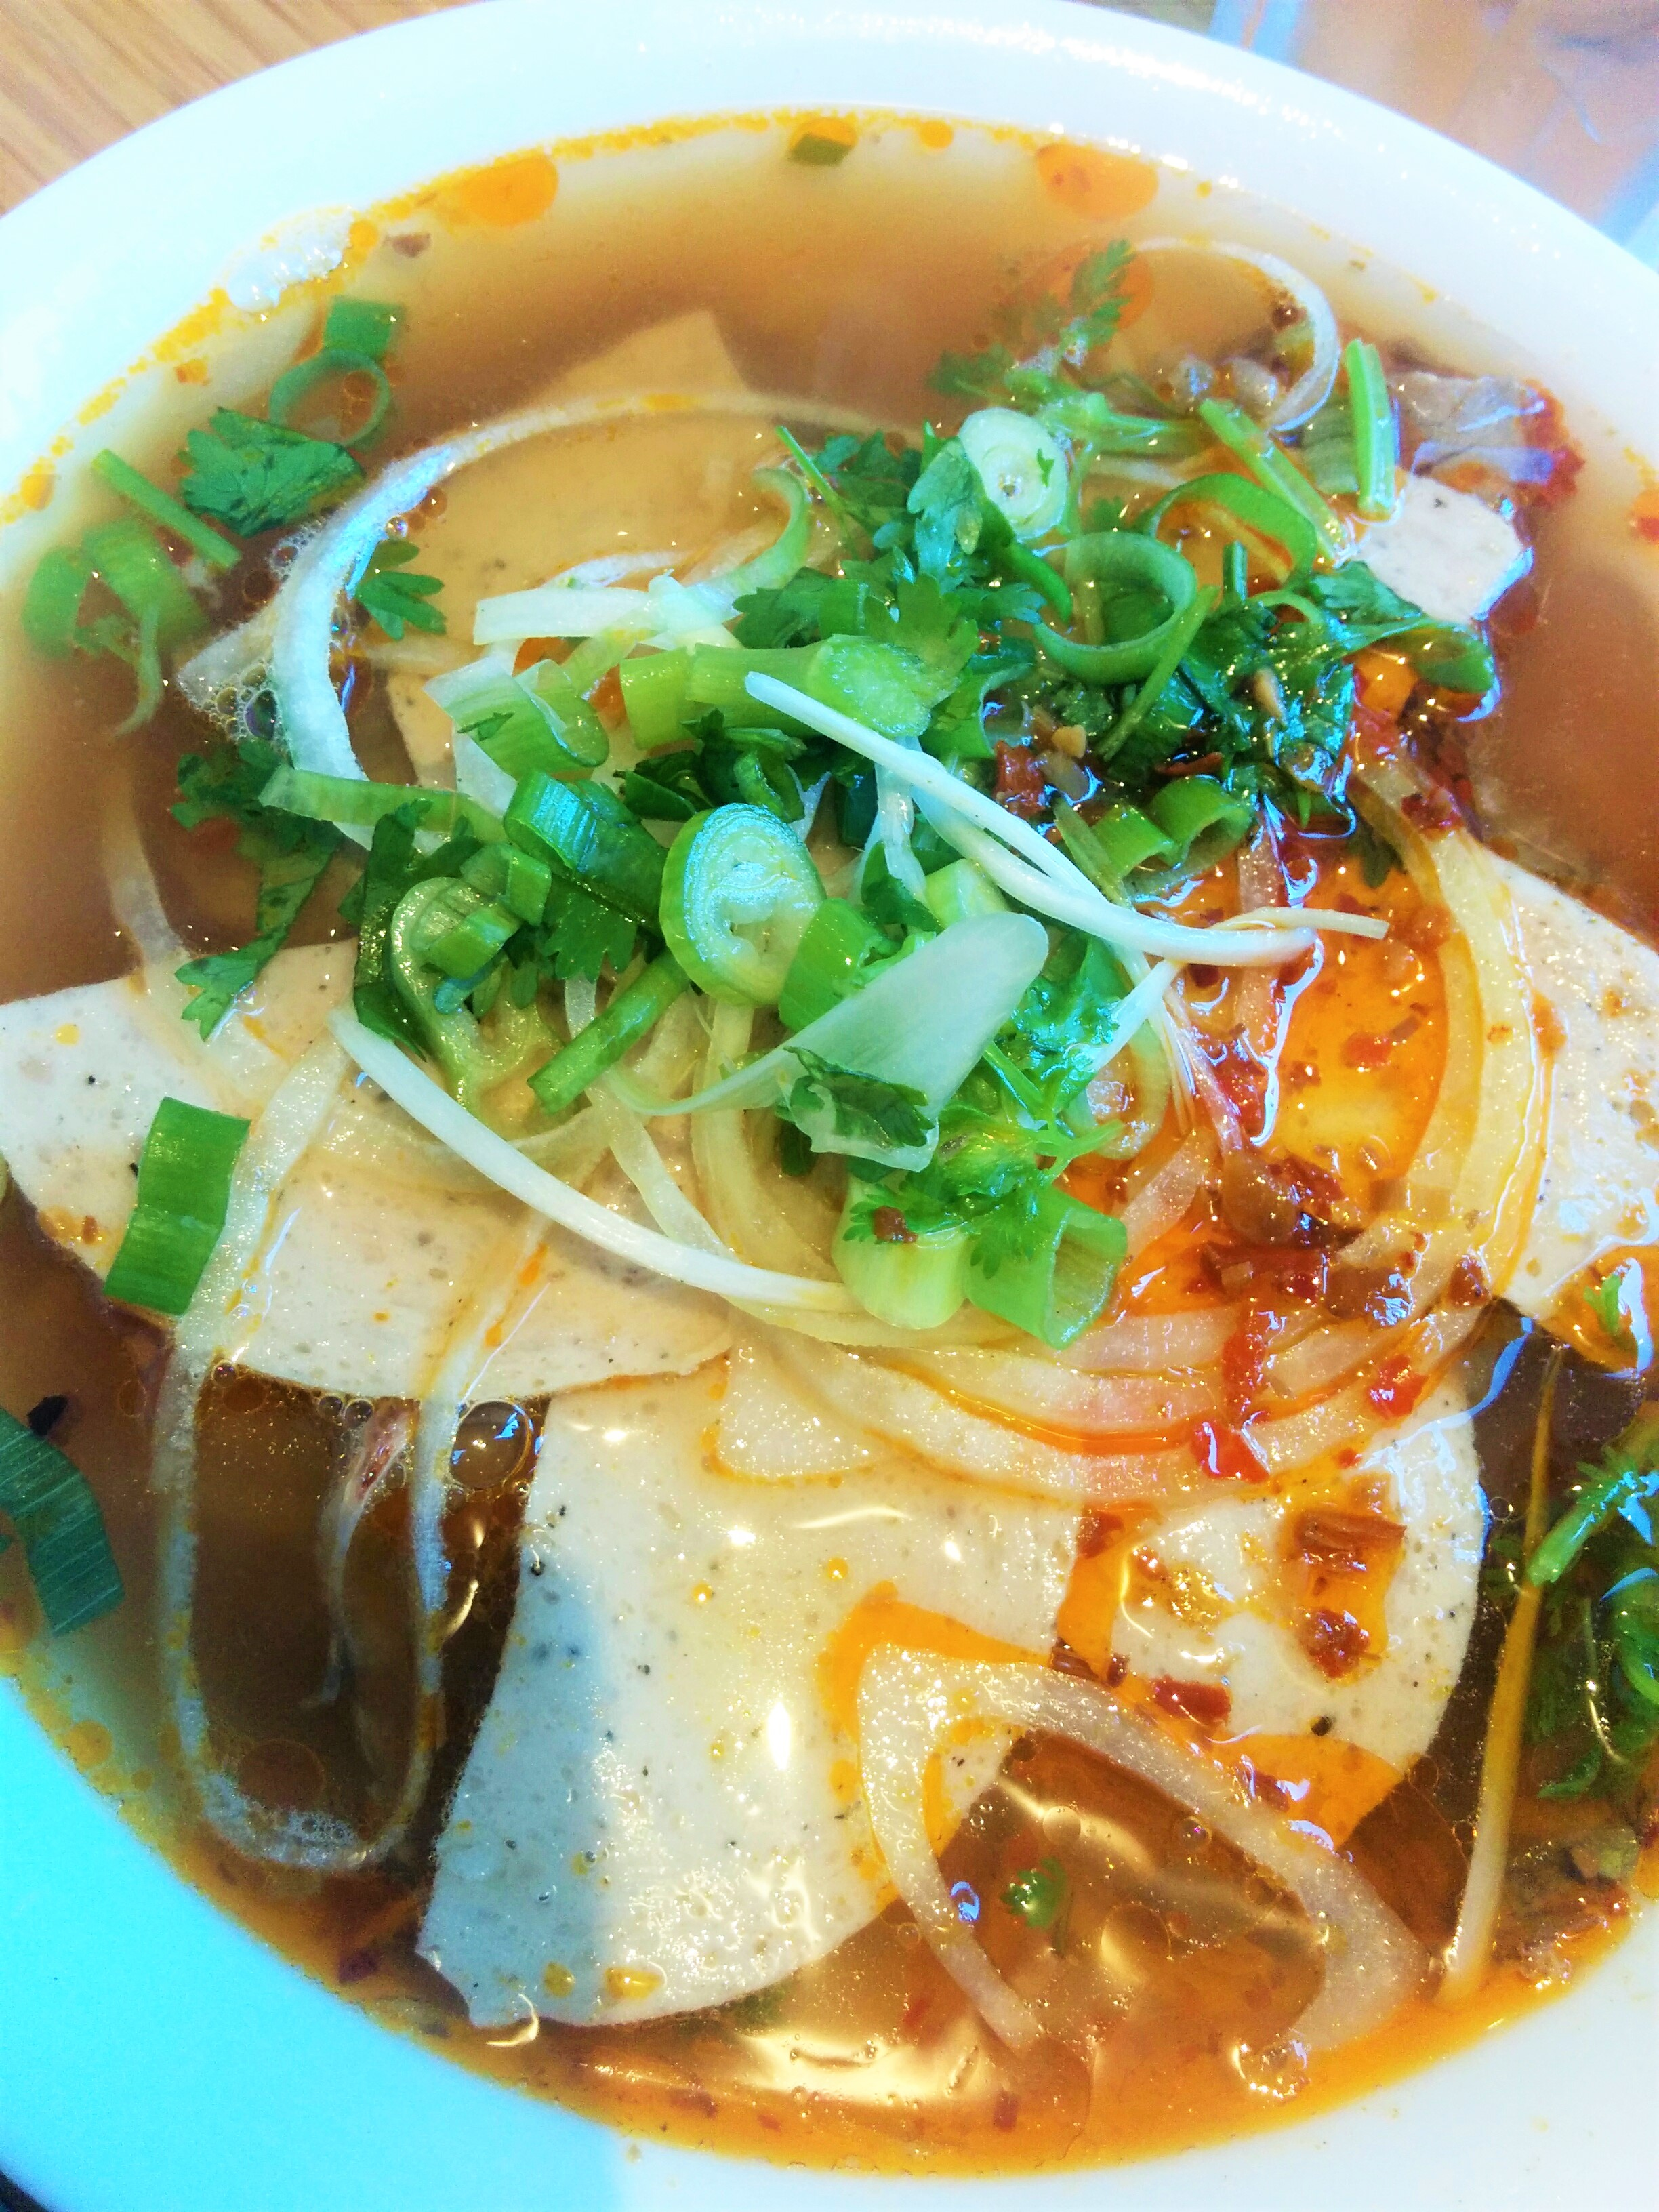 Pho MyMy: How is the Bun Boe Hue?